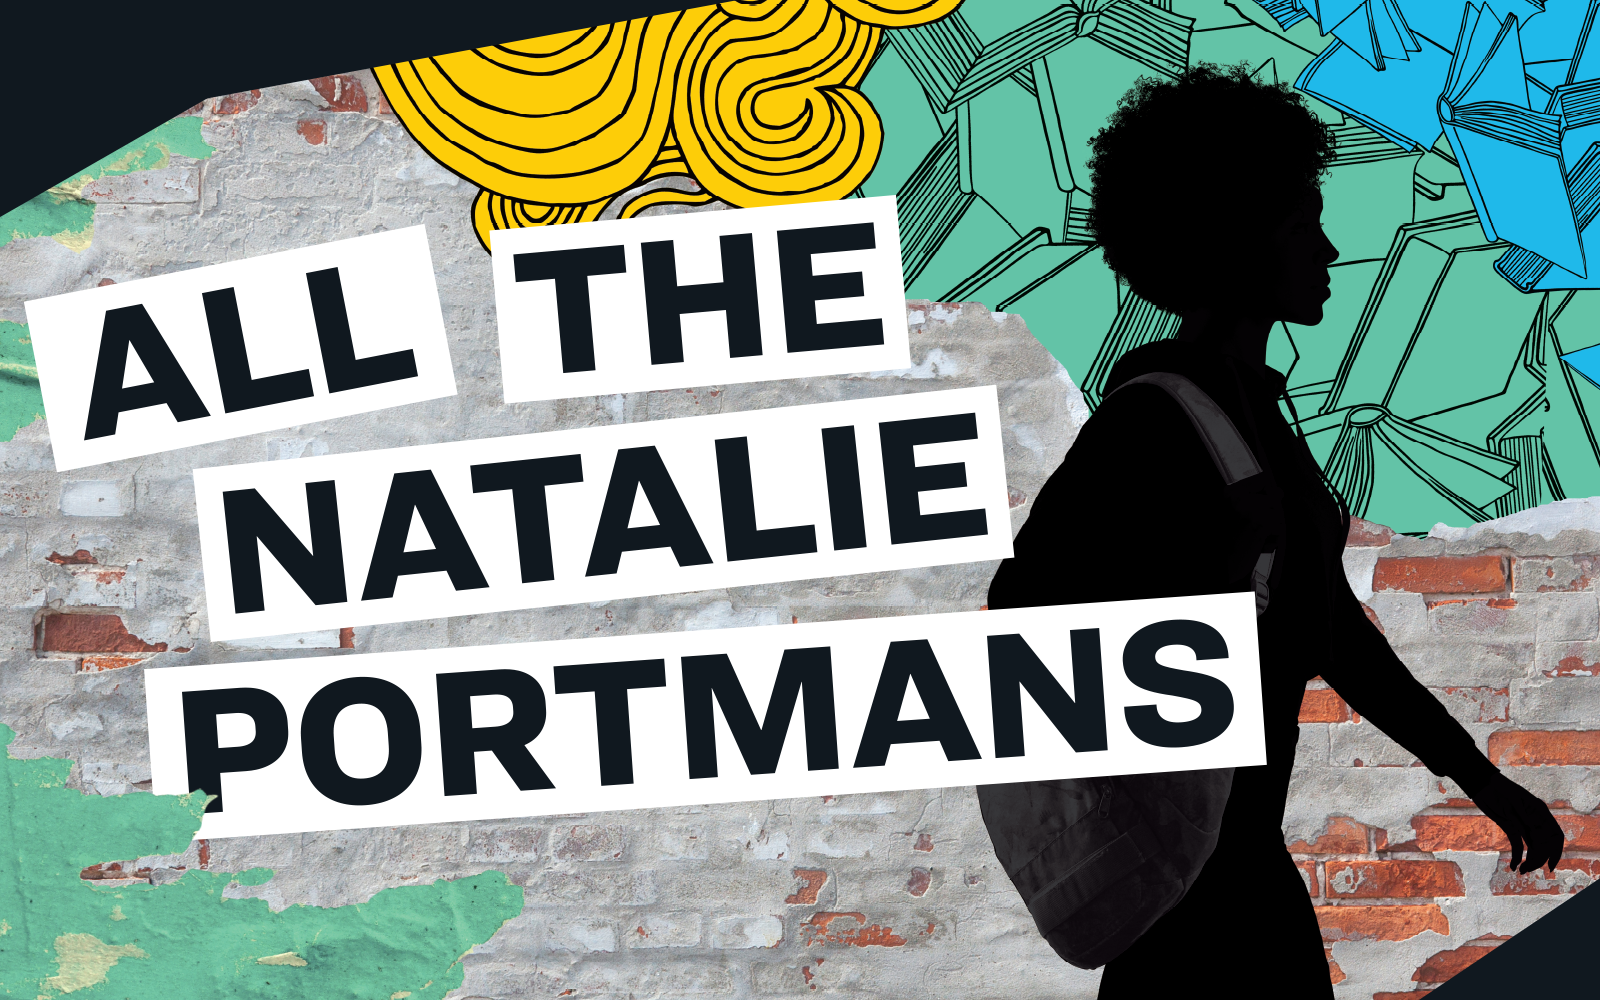 All the natalie portmans. Colorful graphic of a woman in front of a brick wall with line-art